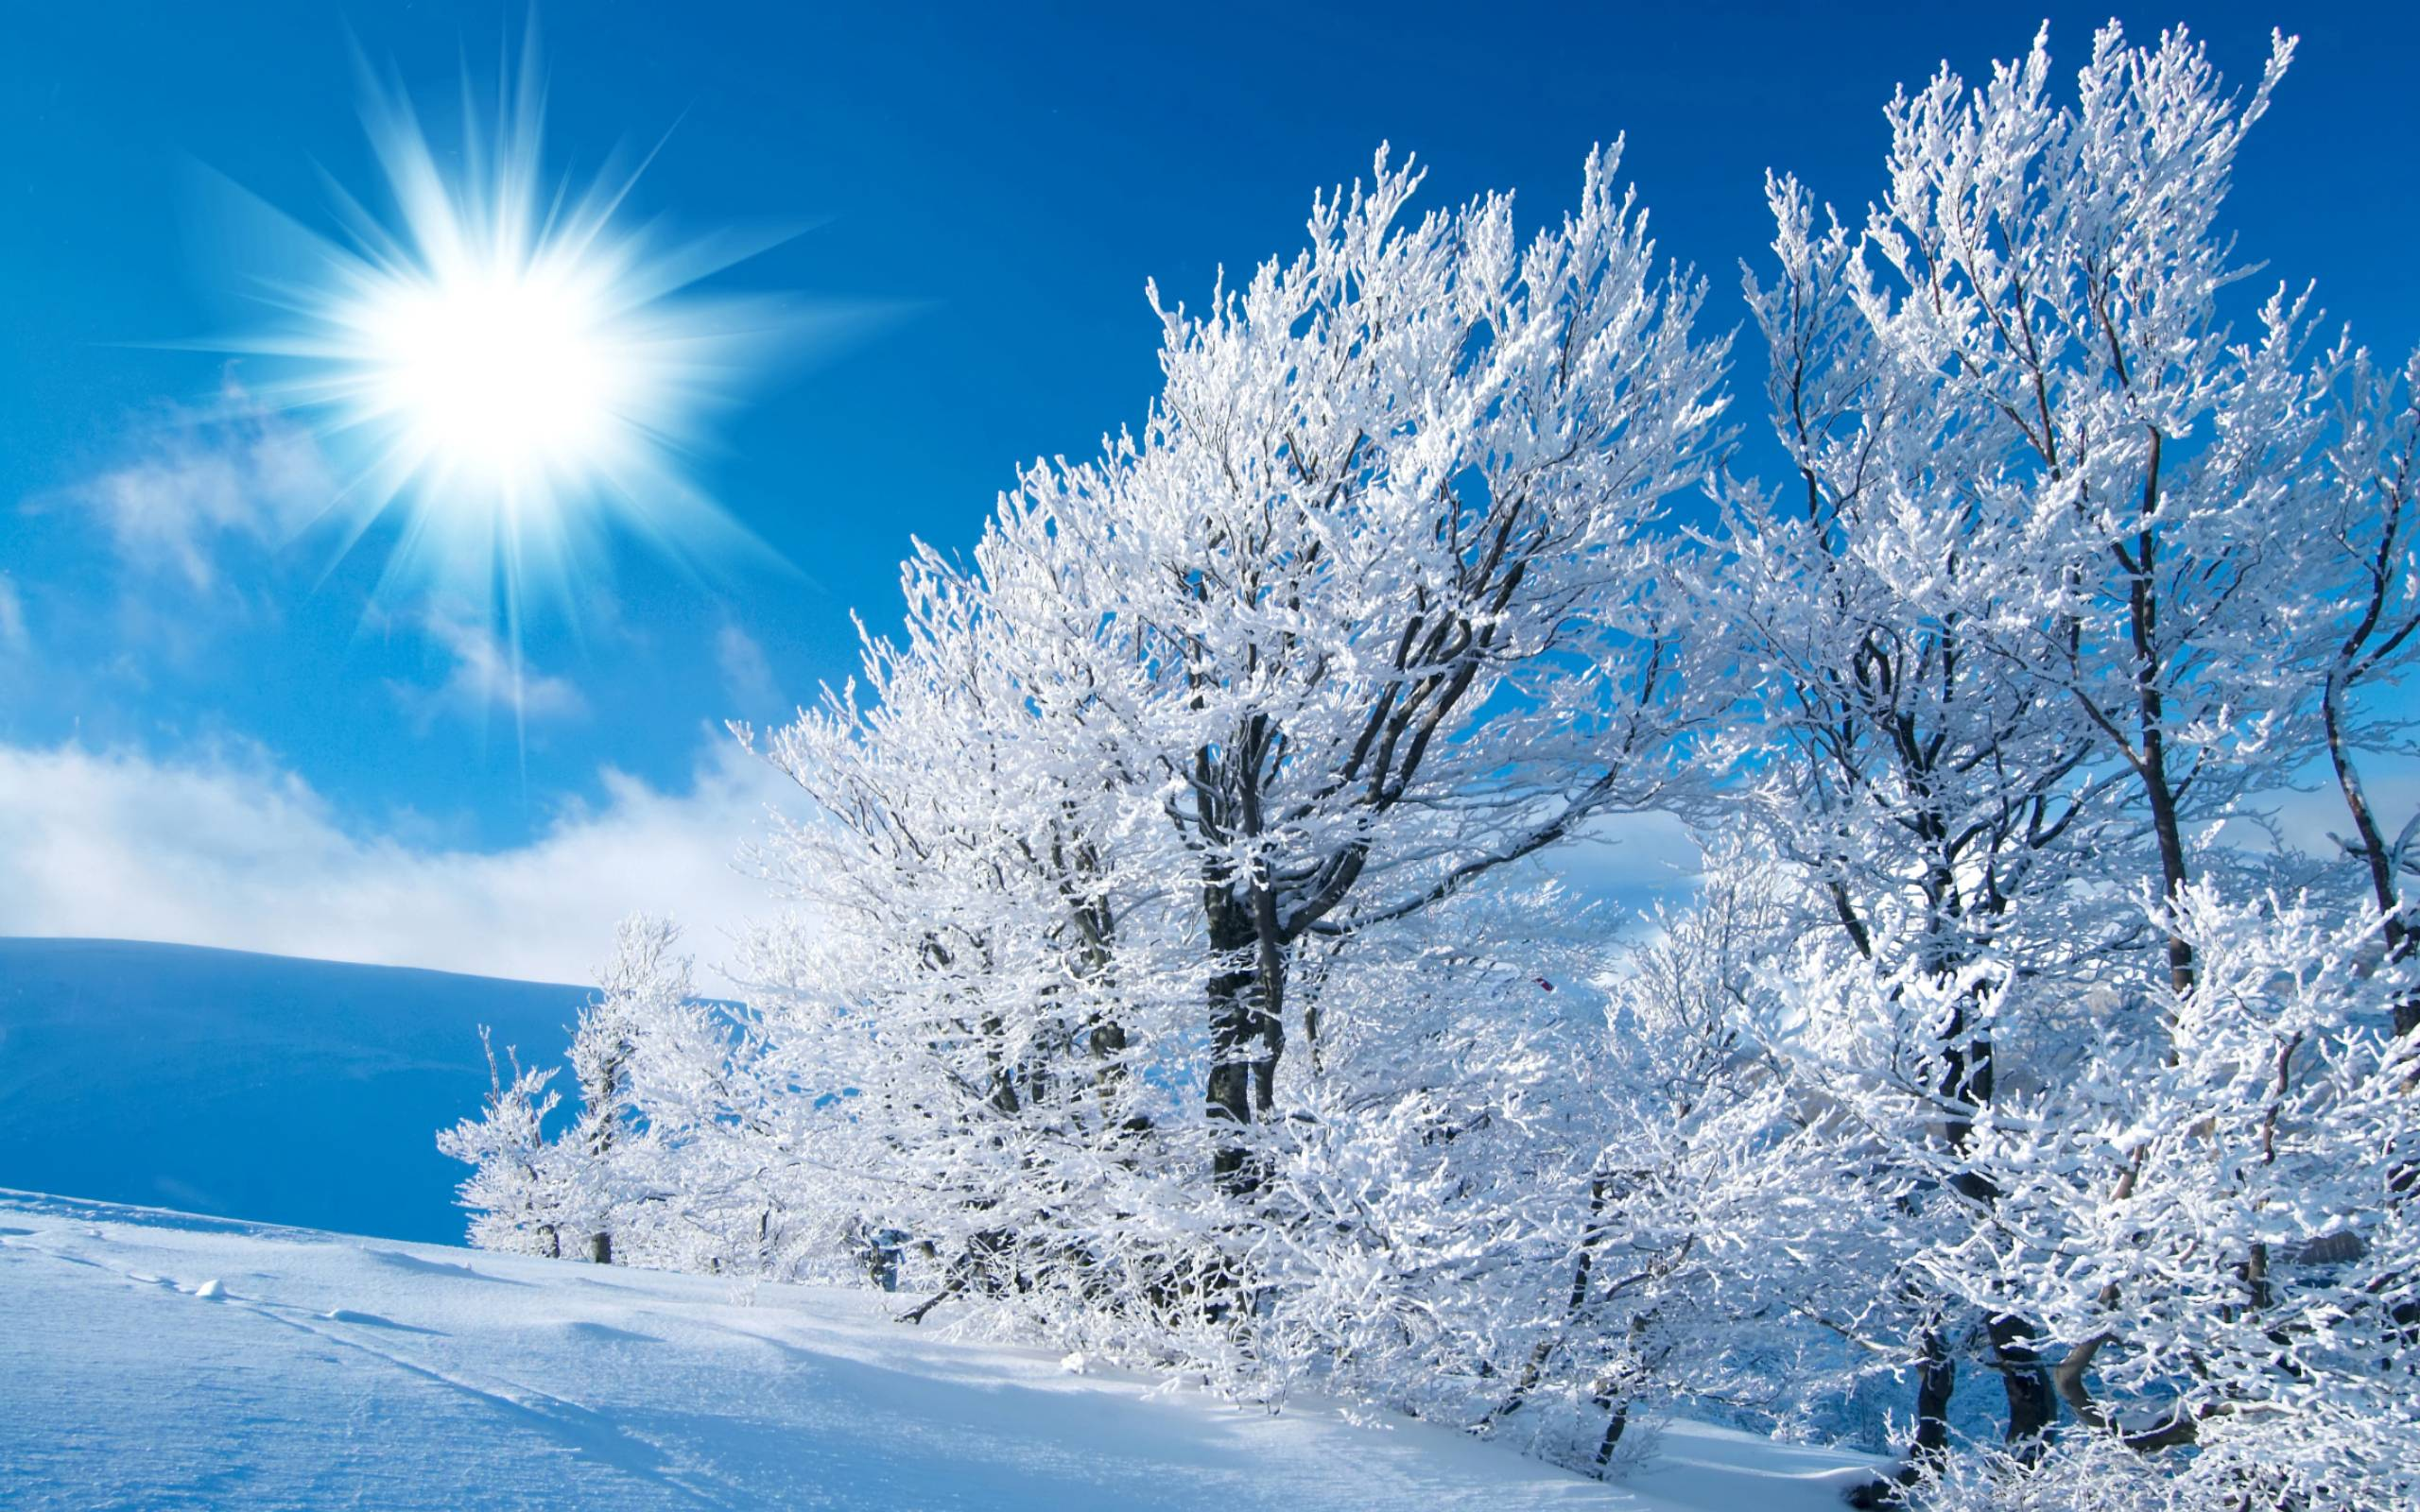 Desktop Wallpapers Winter Scenes 2560x1600